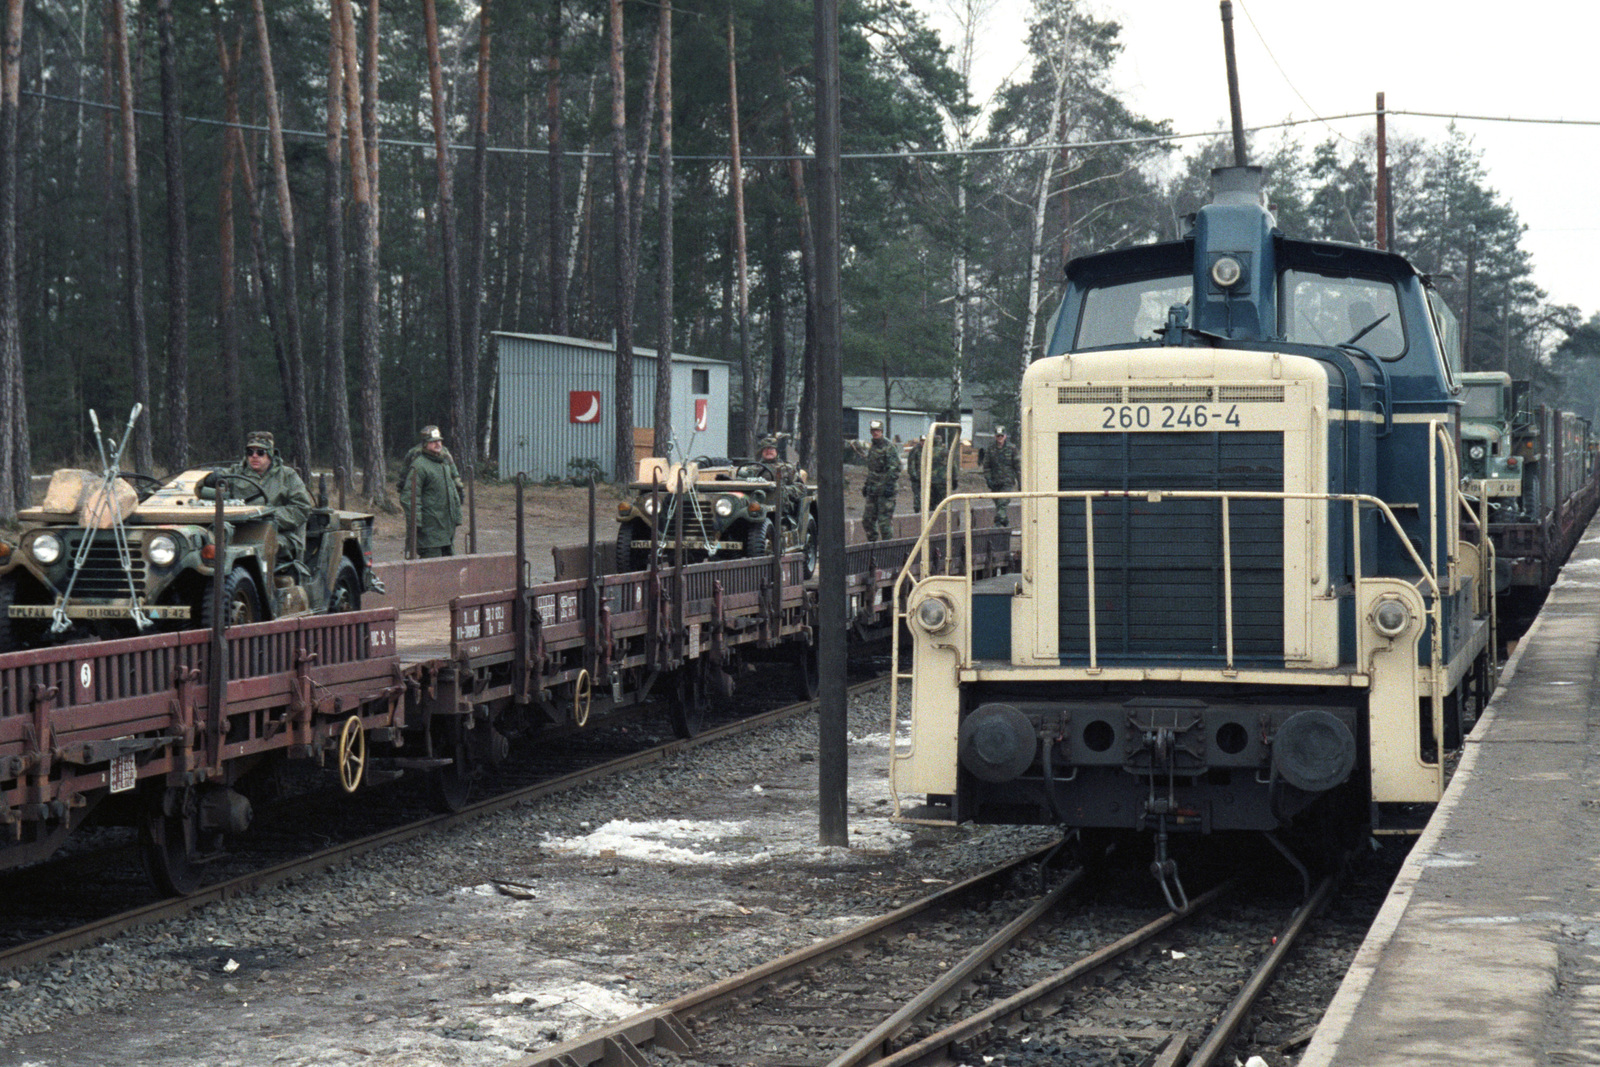 A locomotive prepares to haul a train loaded with ground